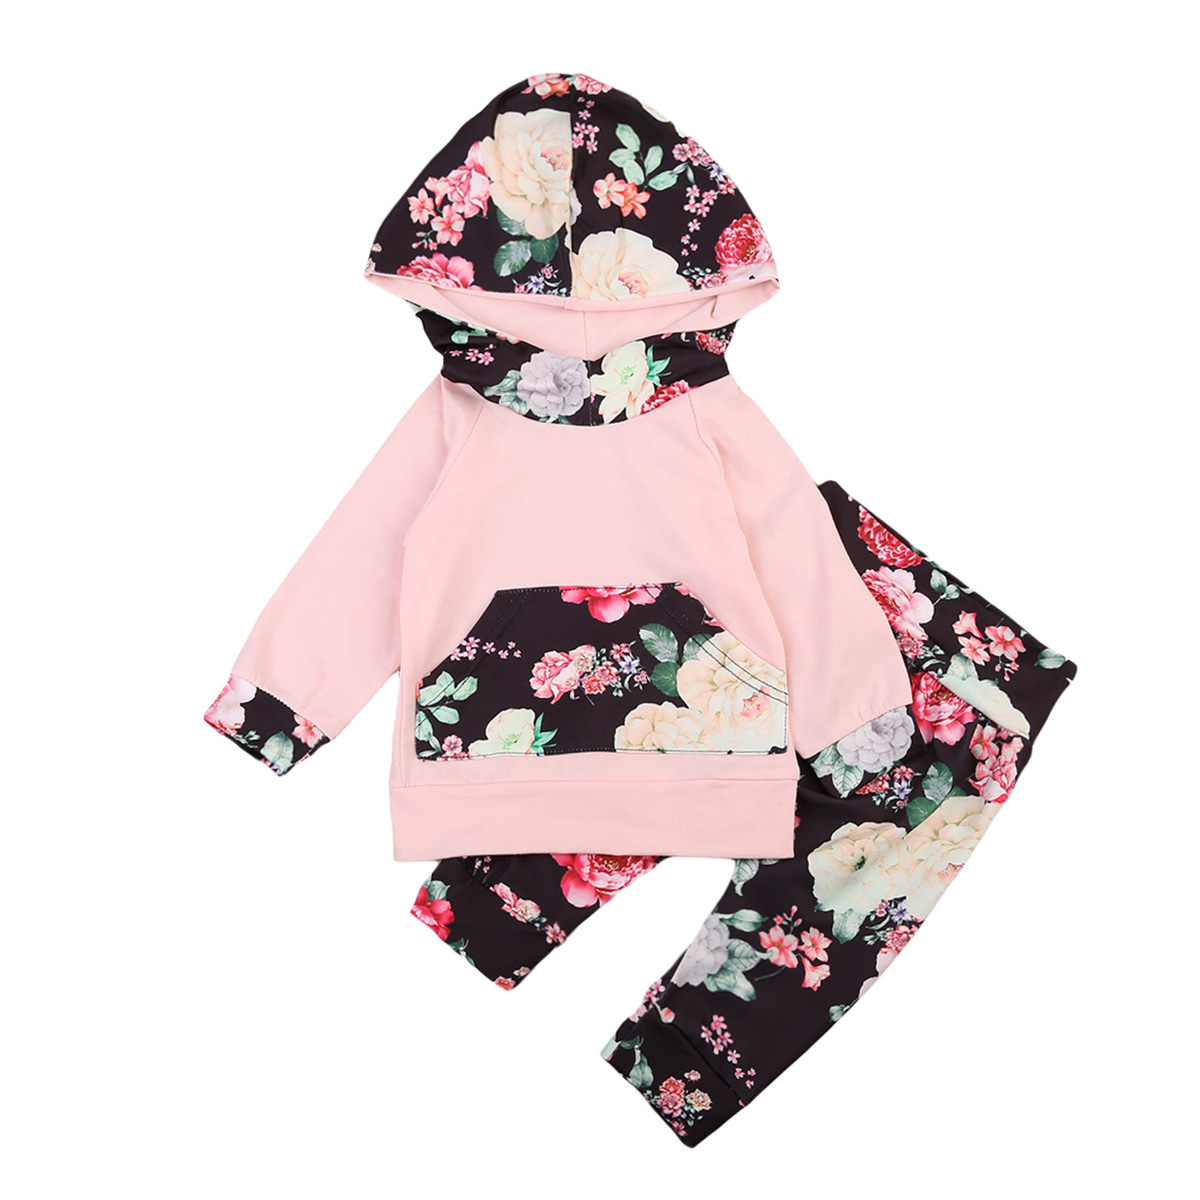 Newborn Toddler Kids Baby Girl Outfits Clothes Hoodie Tops+Pants baby girl baby girl clothes Sets 0-24M